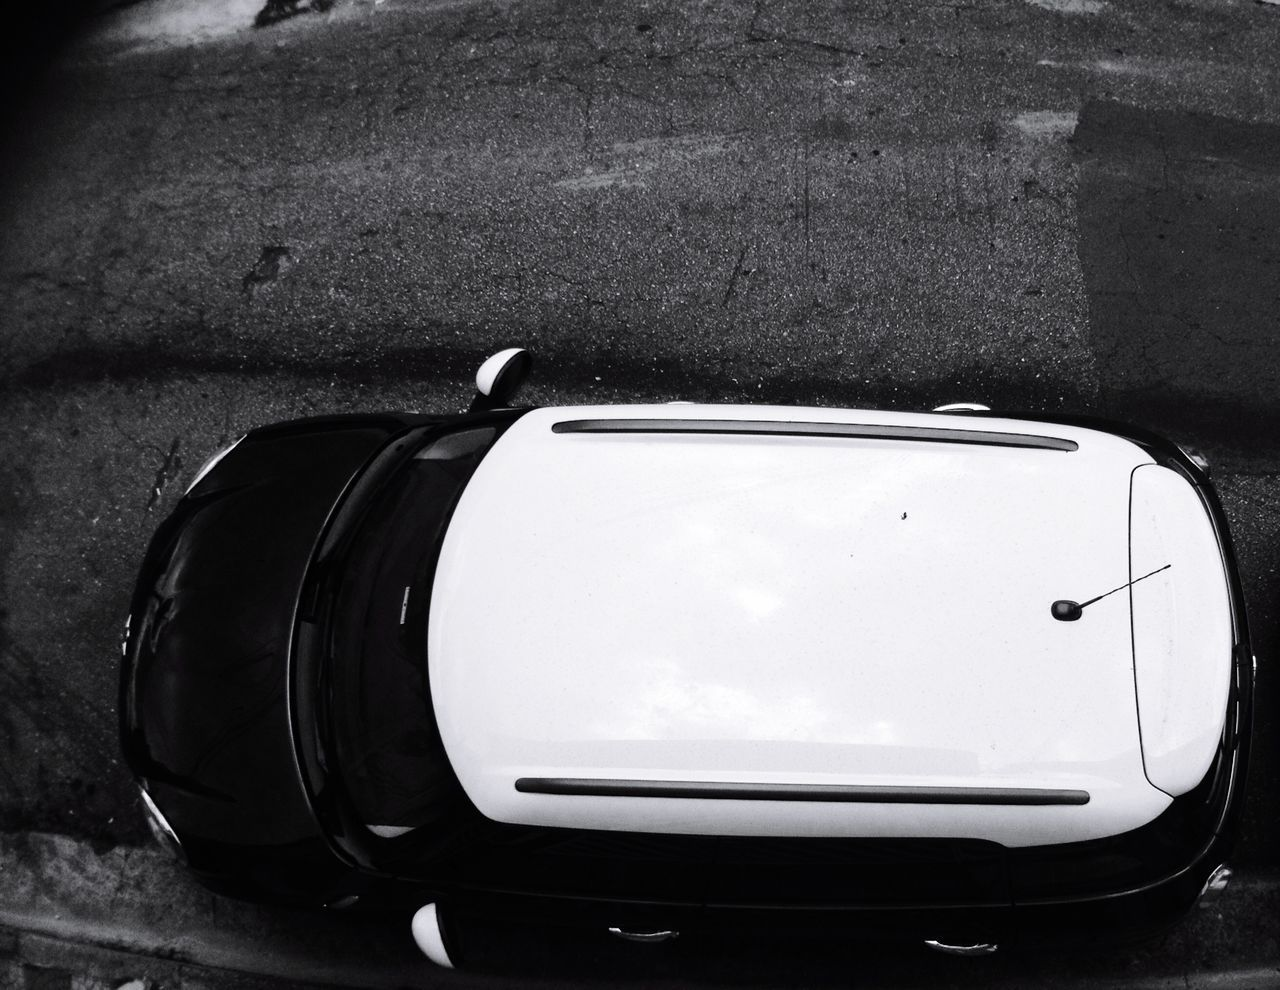 car, mode of transport, transportation, land vehicle, day, no people, outdoors, road, animal themes